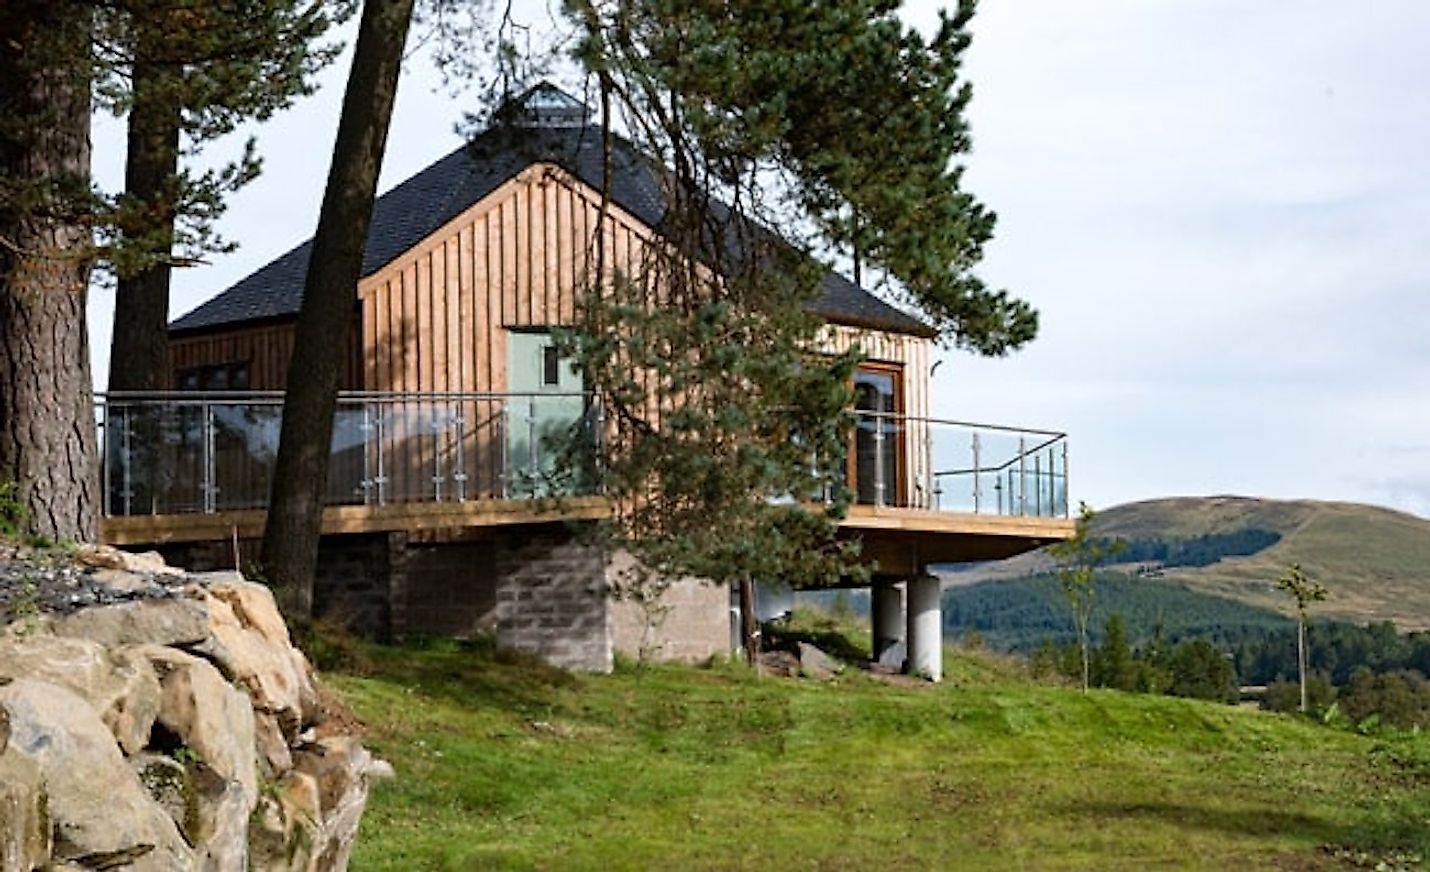 The Glenshee Treehouses. Image credit: www.dalnoid.co.uk